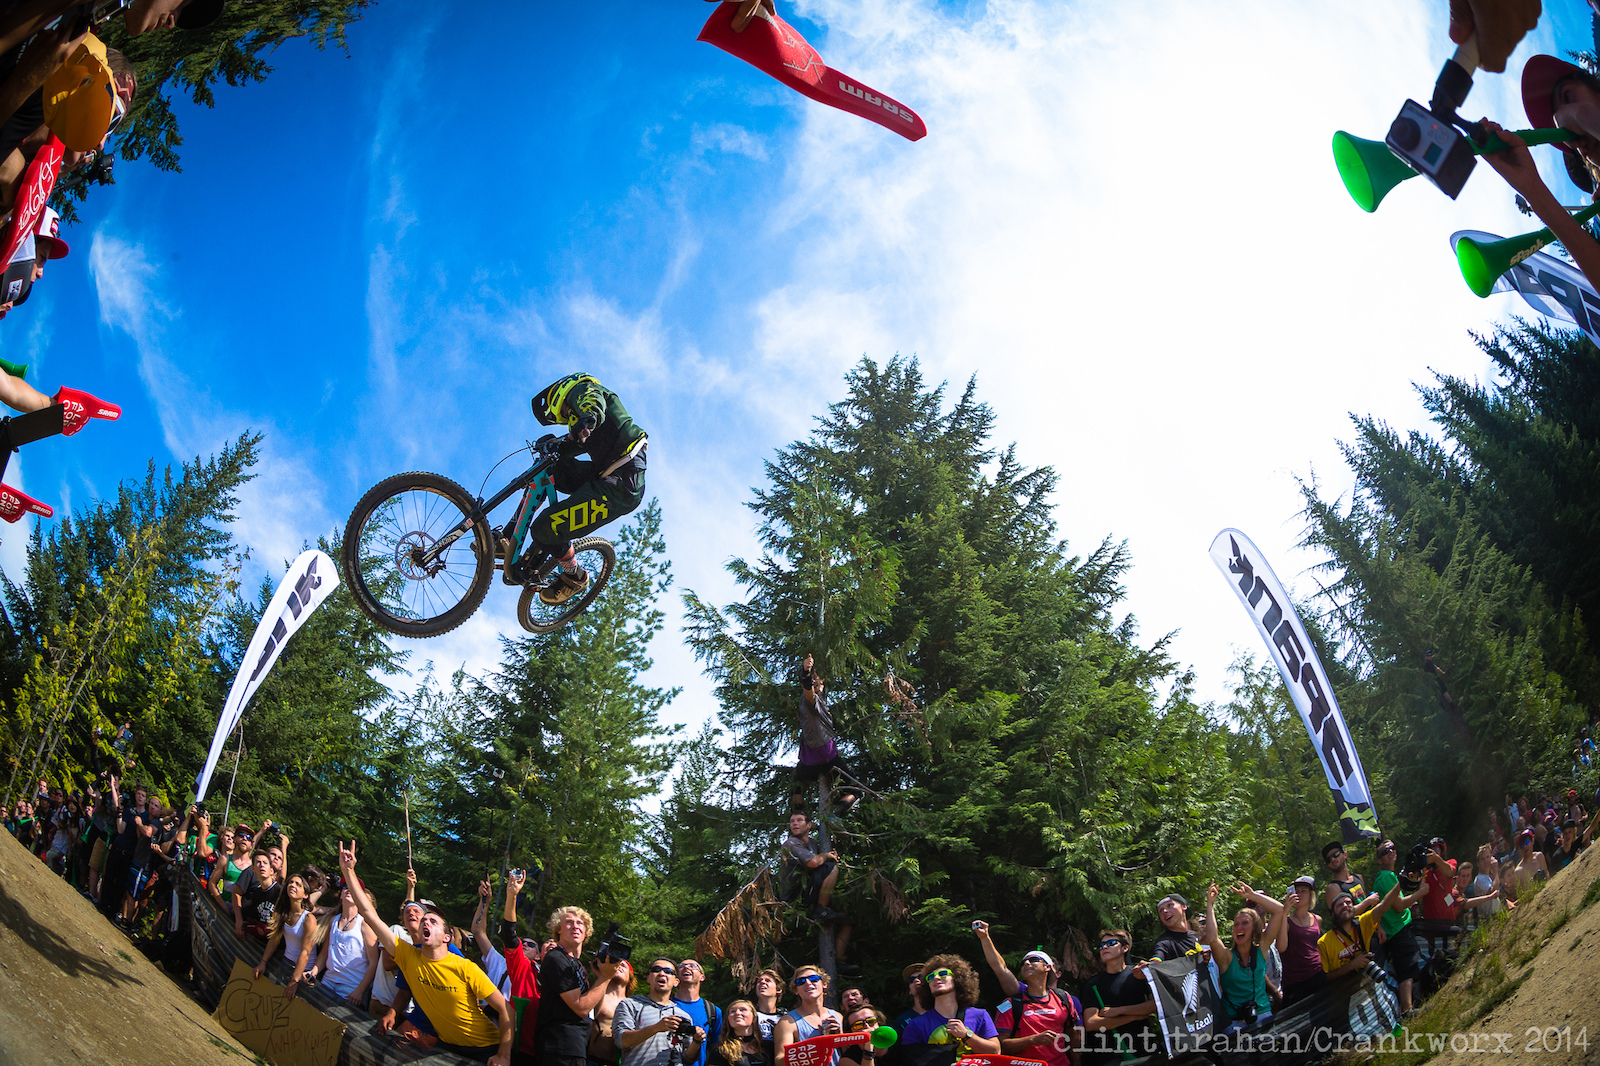 Photo by clint trahan crankworx